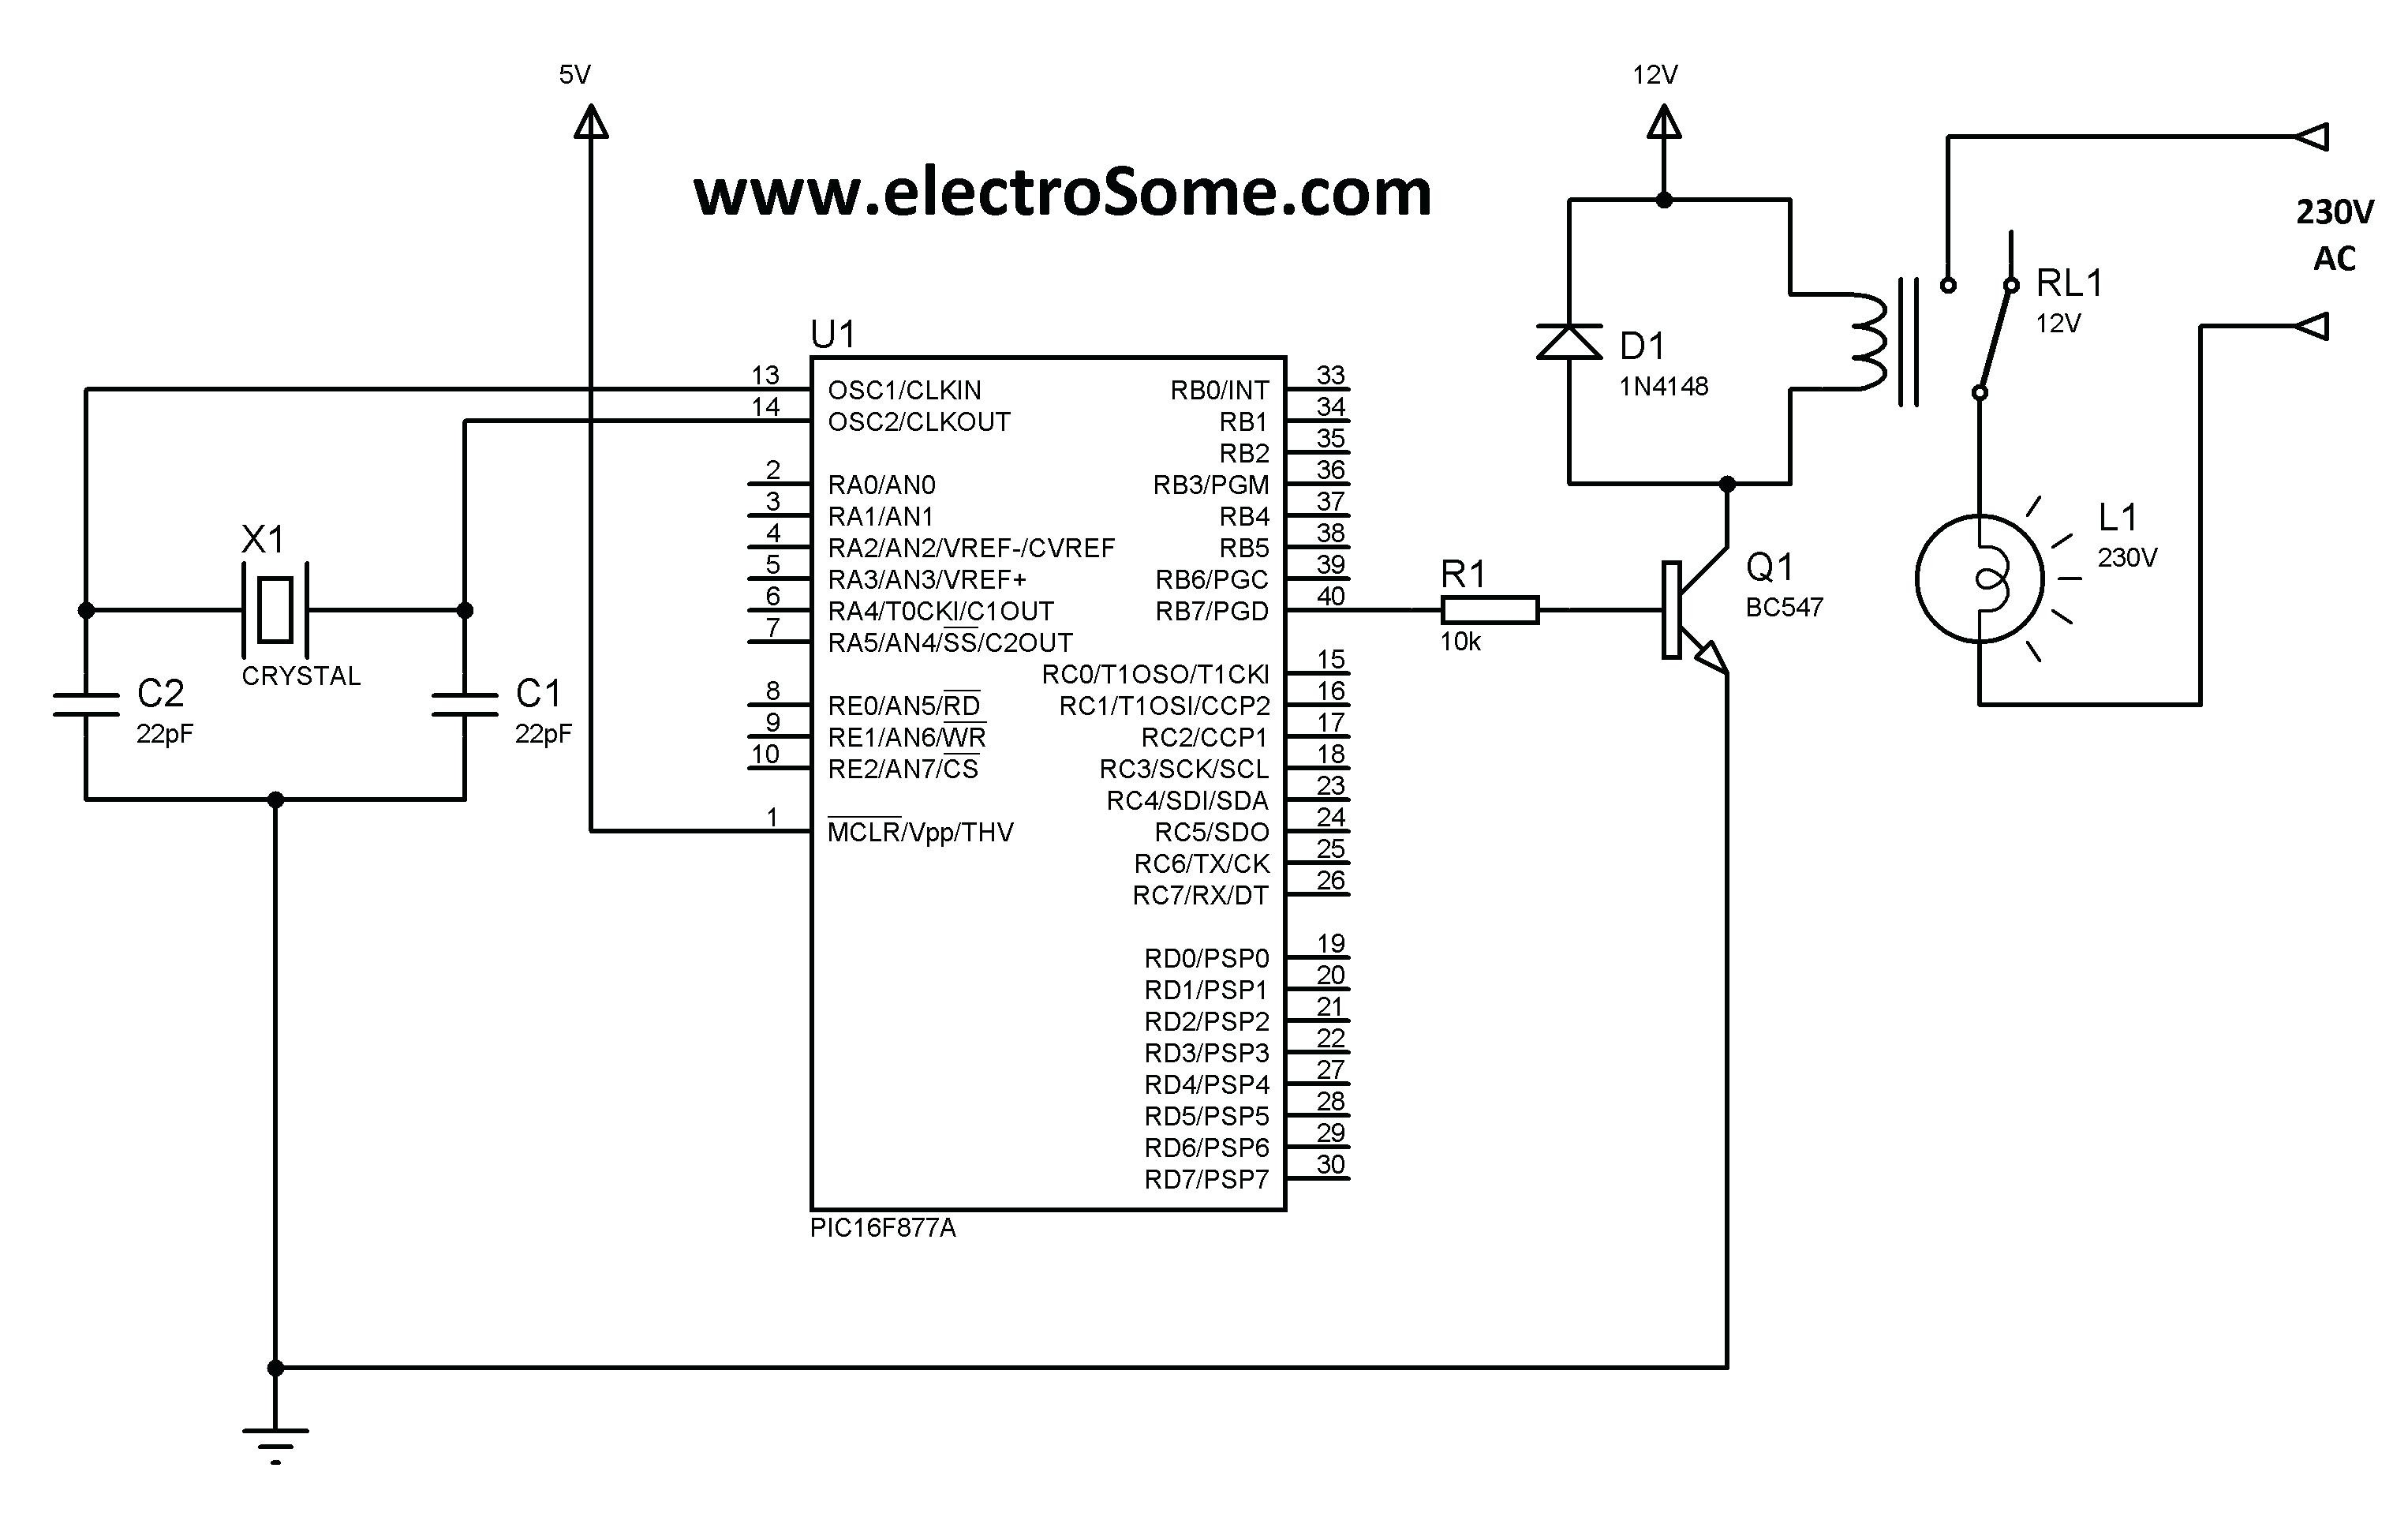 12v relay switch wiring diagram new 12v relay switch wiring diagram Flasher Relay Wiring Diagram 12v